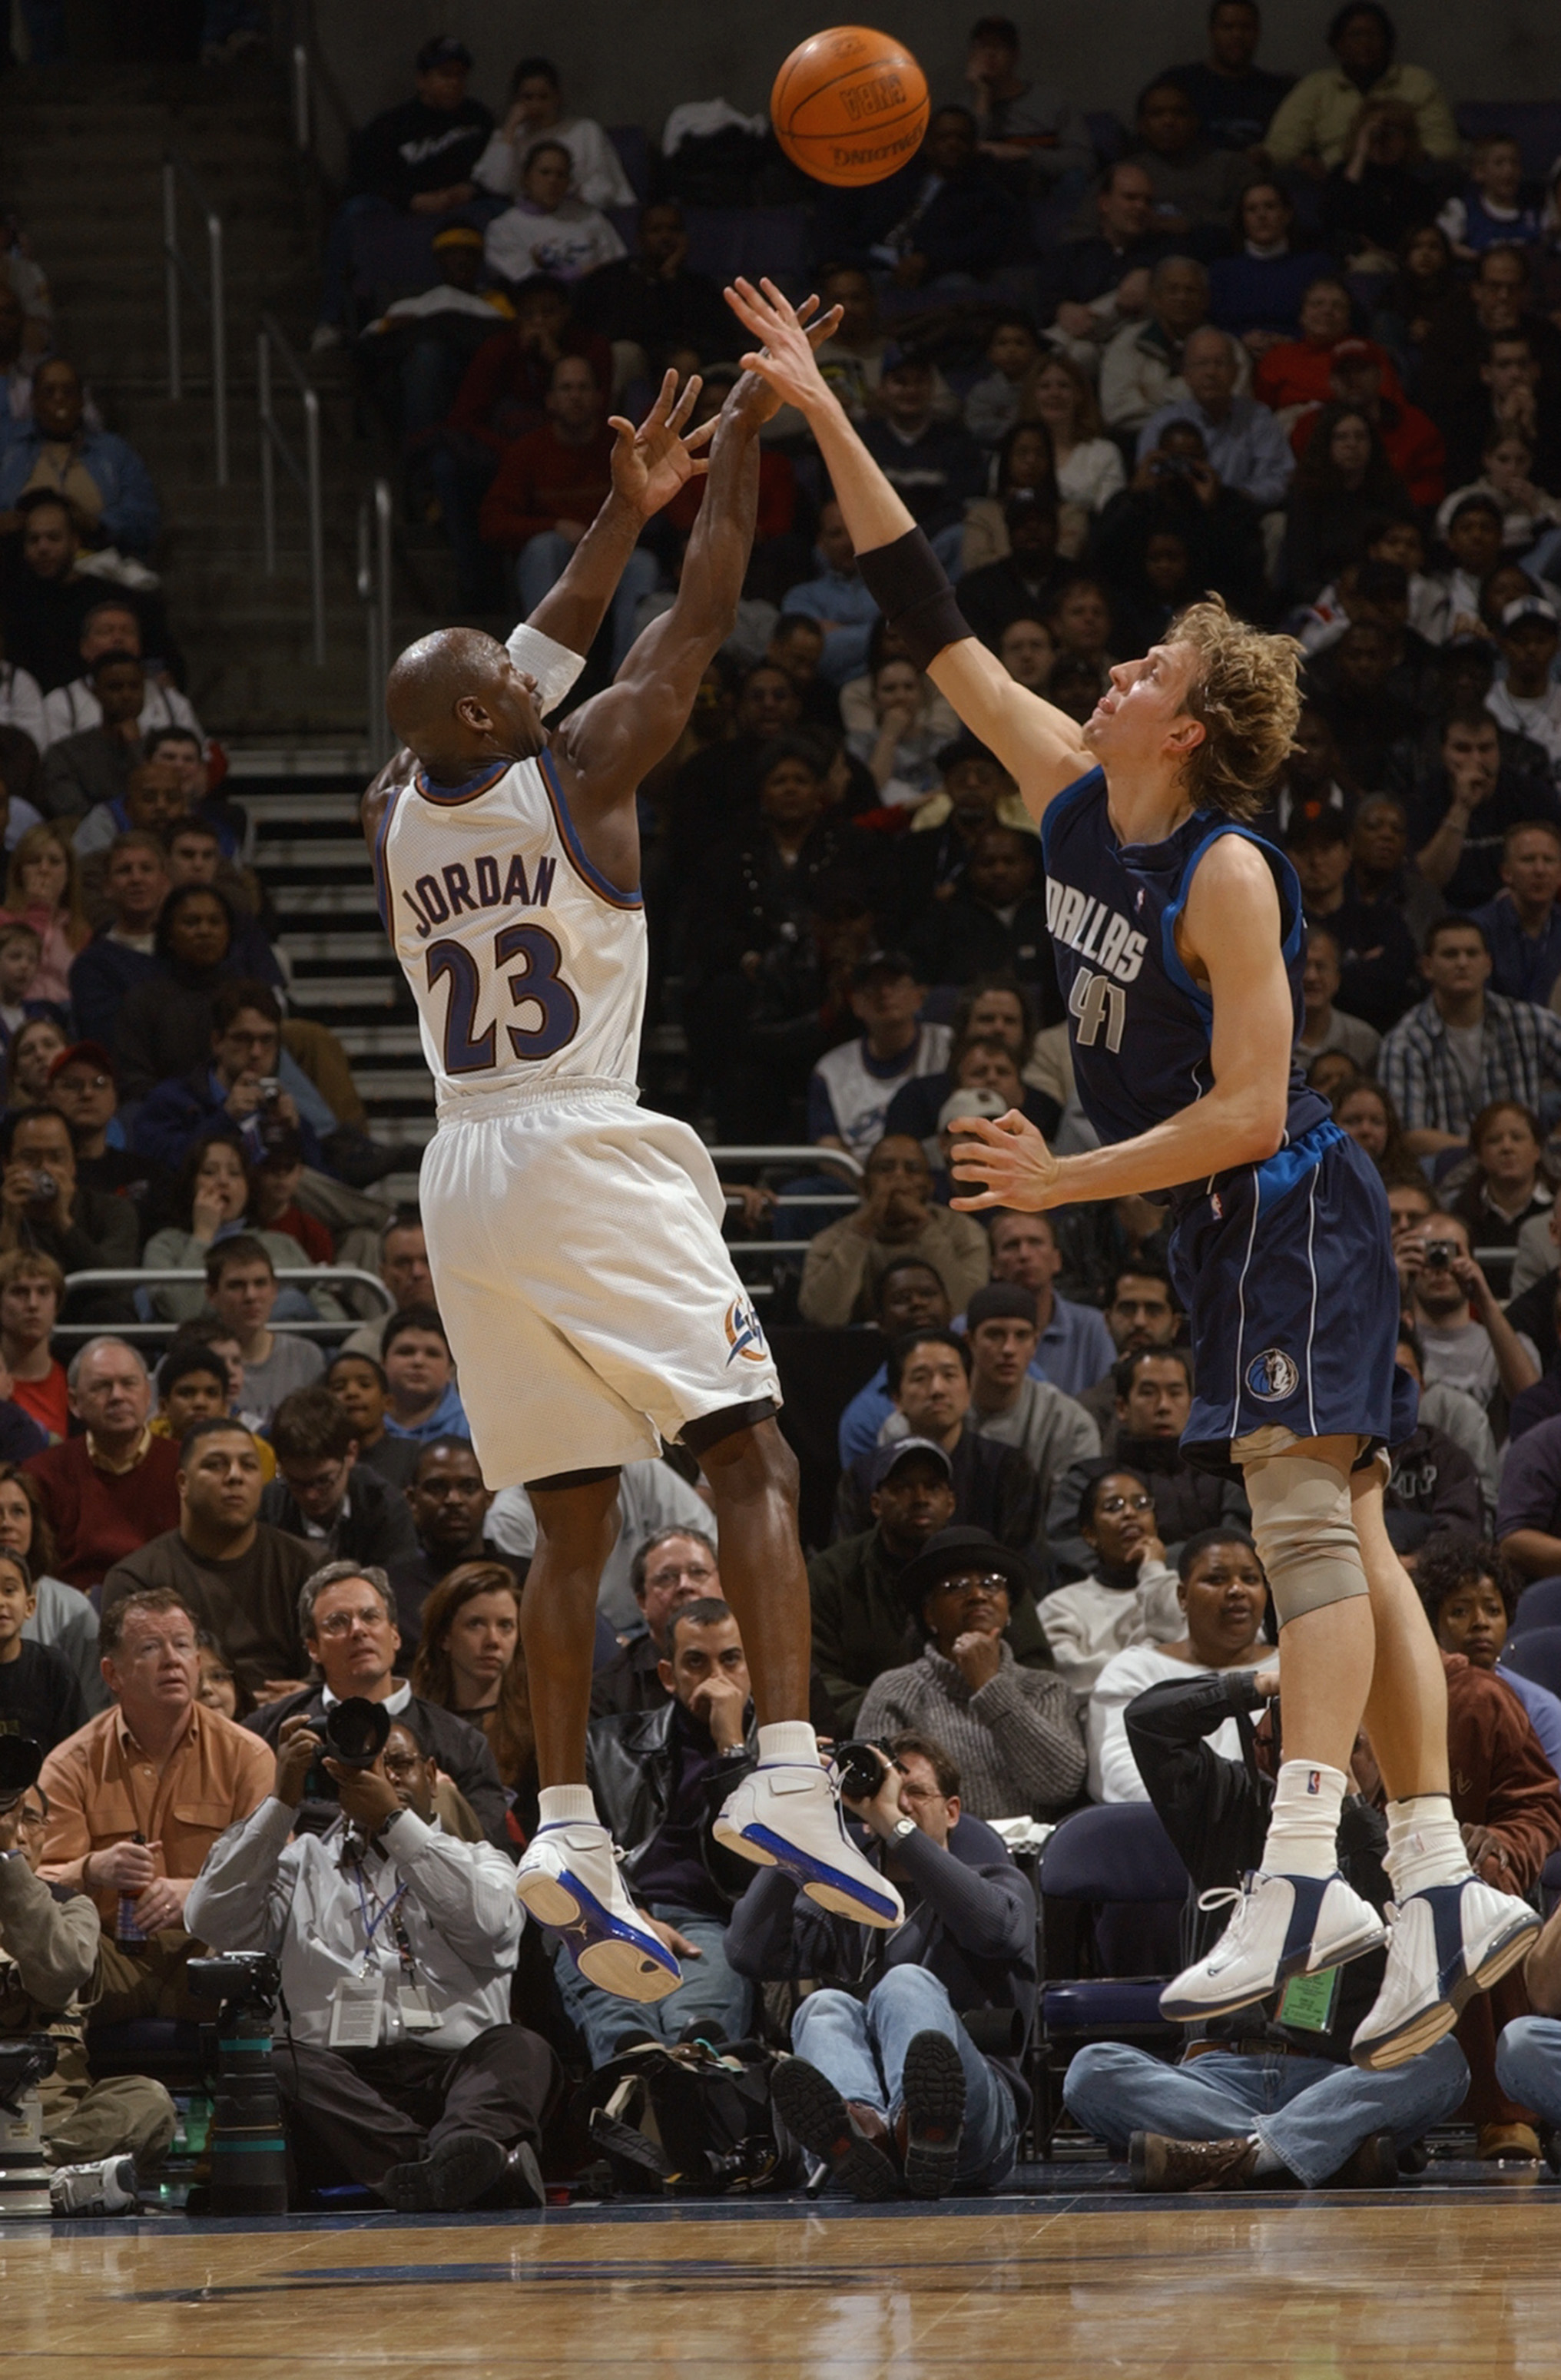 WASHINGTON - FEBRUARY 23:  Michael Jordan #23 of the Washington Wizards shoots over Dirk Nowitzki #41 of the Dallas Mavericks during the NBA game at MCI Center on February 23, 2003 in Washington, D.C.  The Mavericks won in overtime 106-101.  NOTE TO USER: